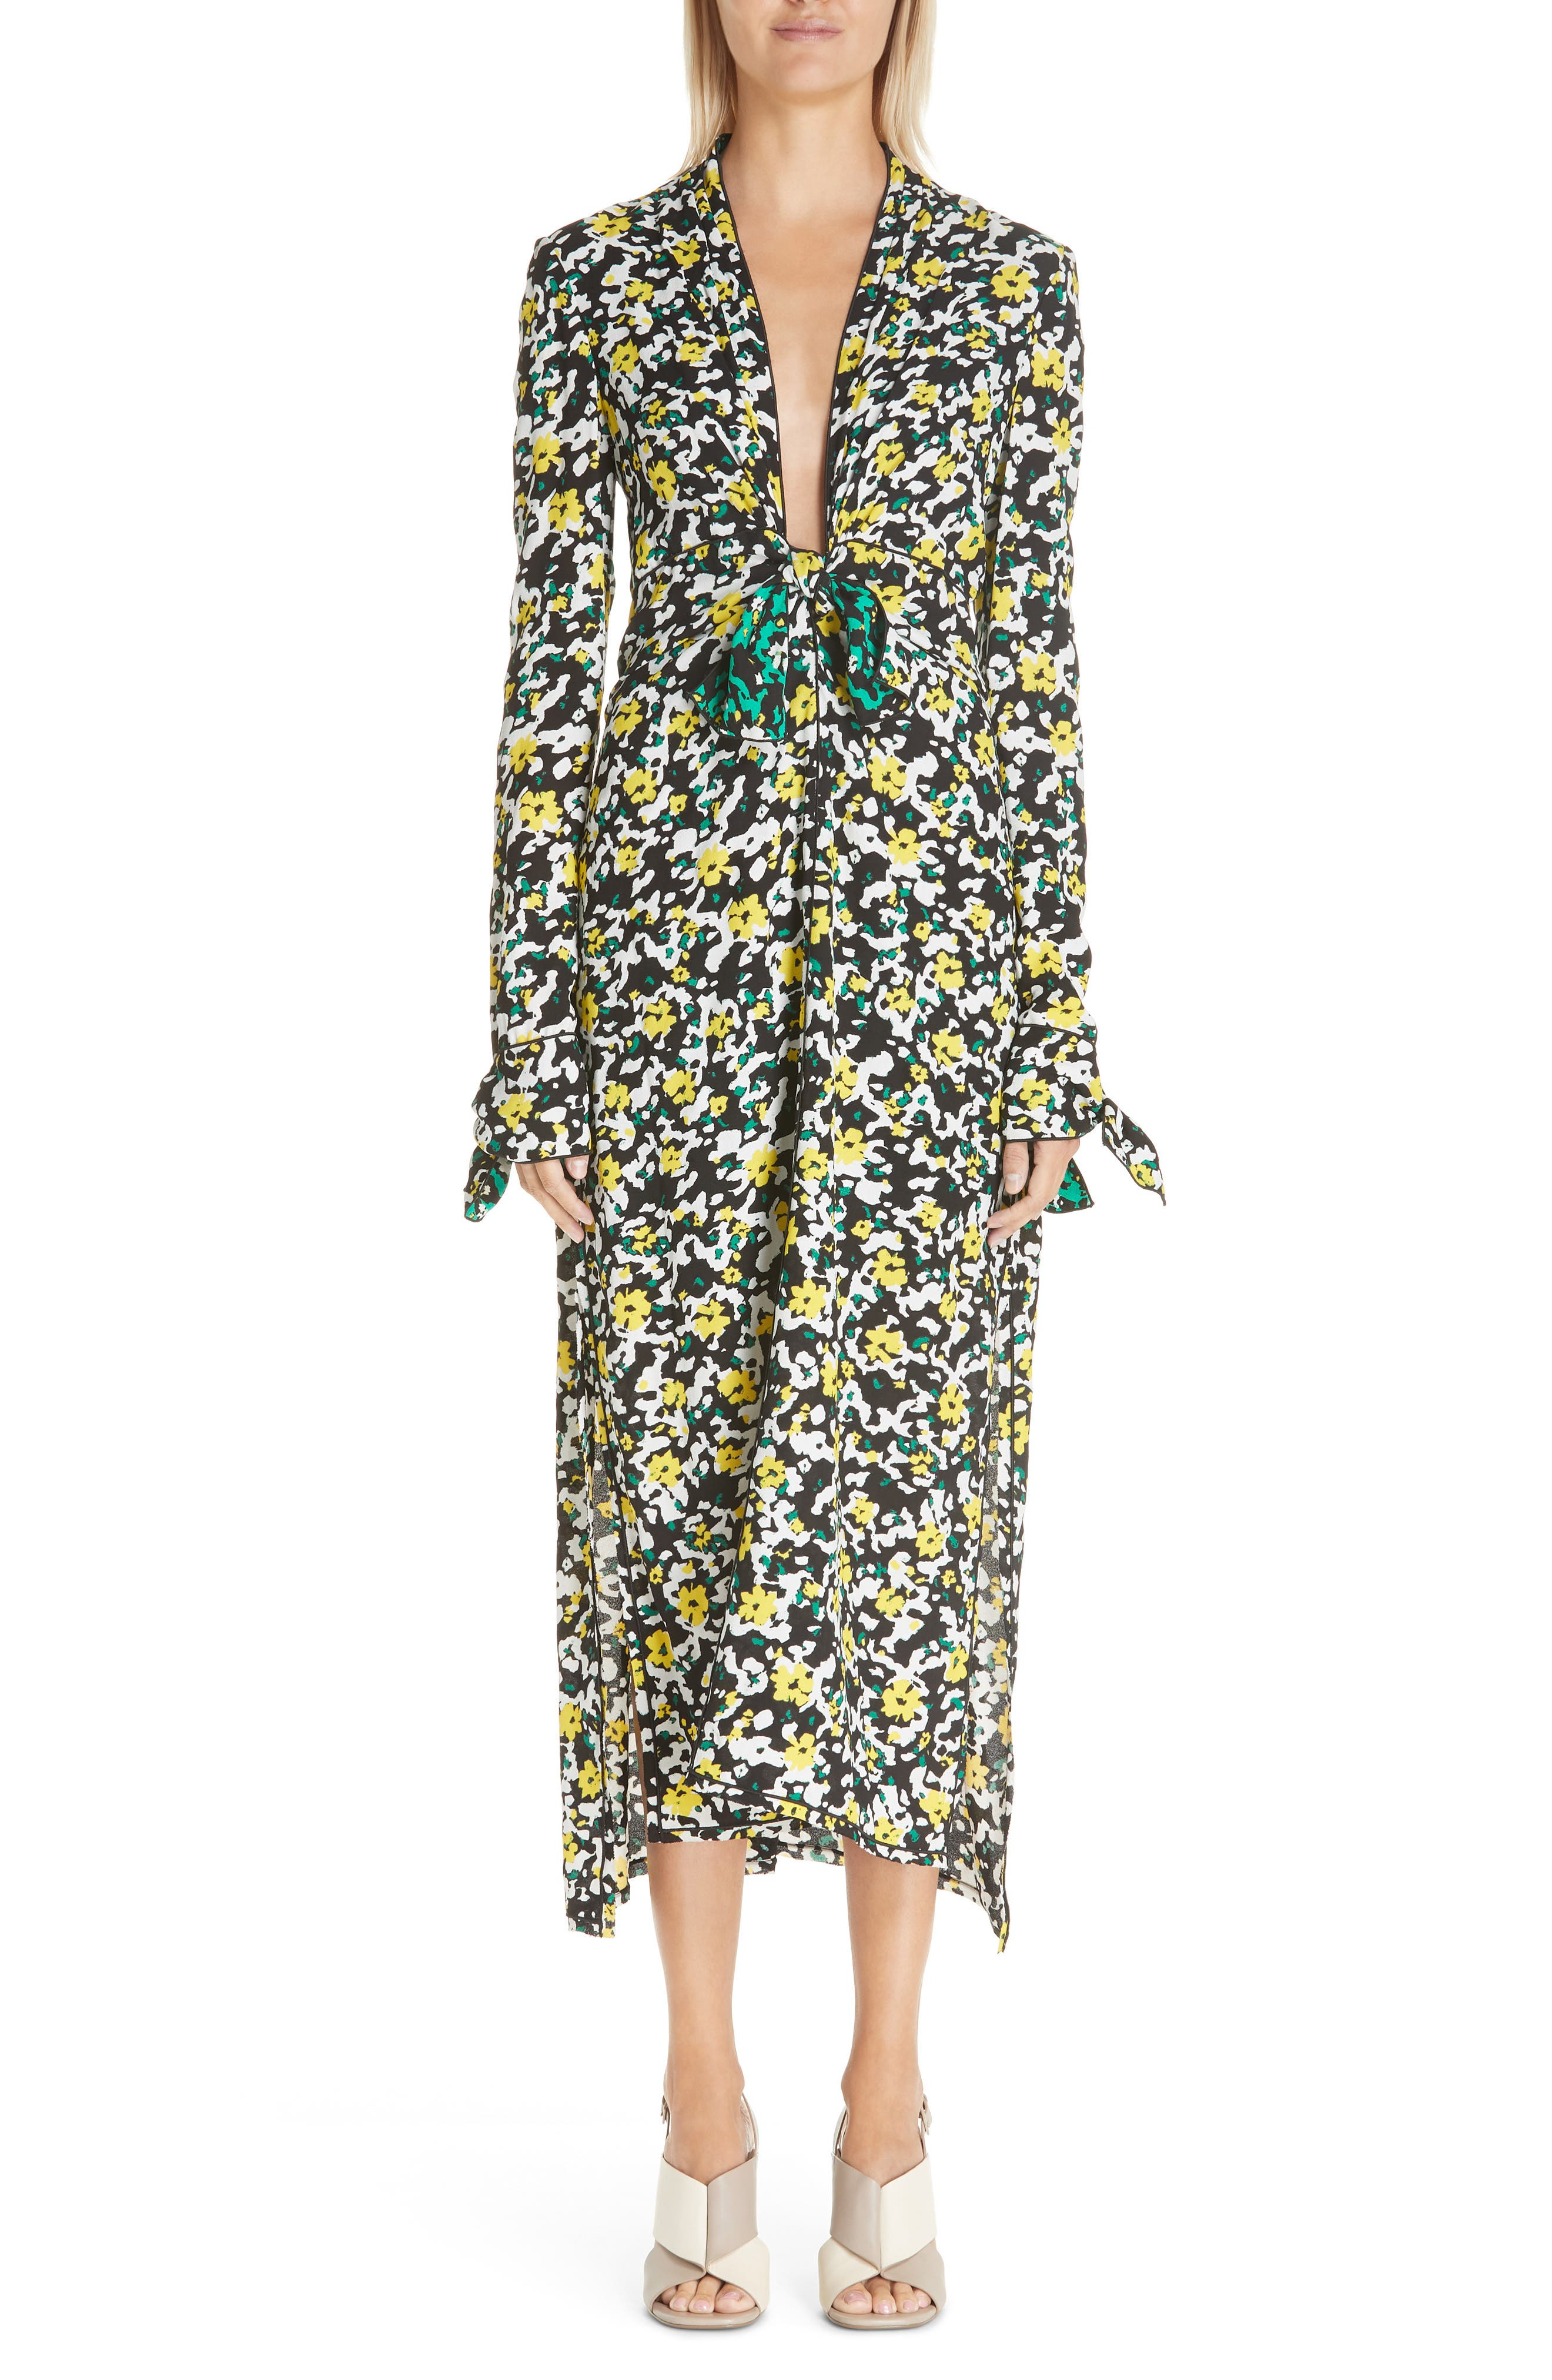 PROENZA SCHOULER Floral Print Knotted Midi Dress, Main, color, WHITE WILDFLOWER